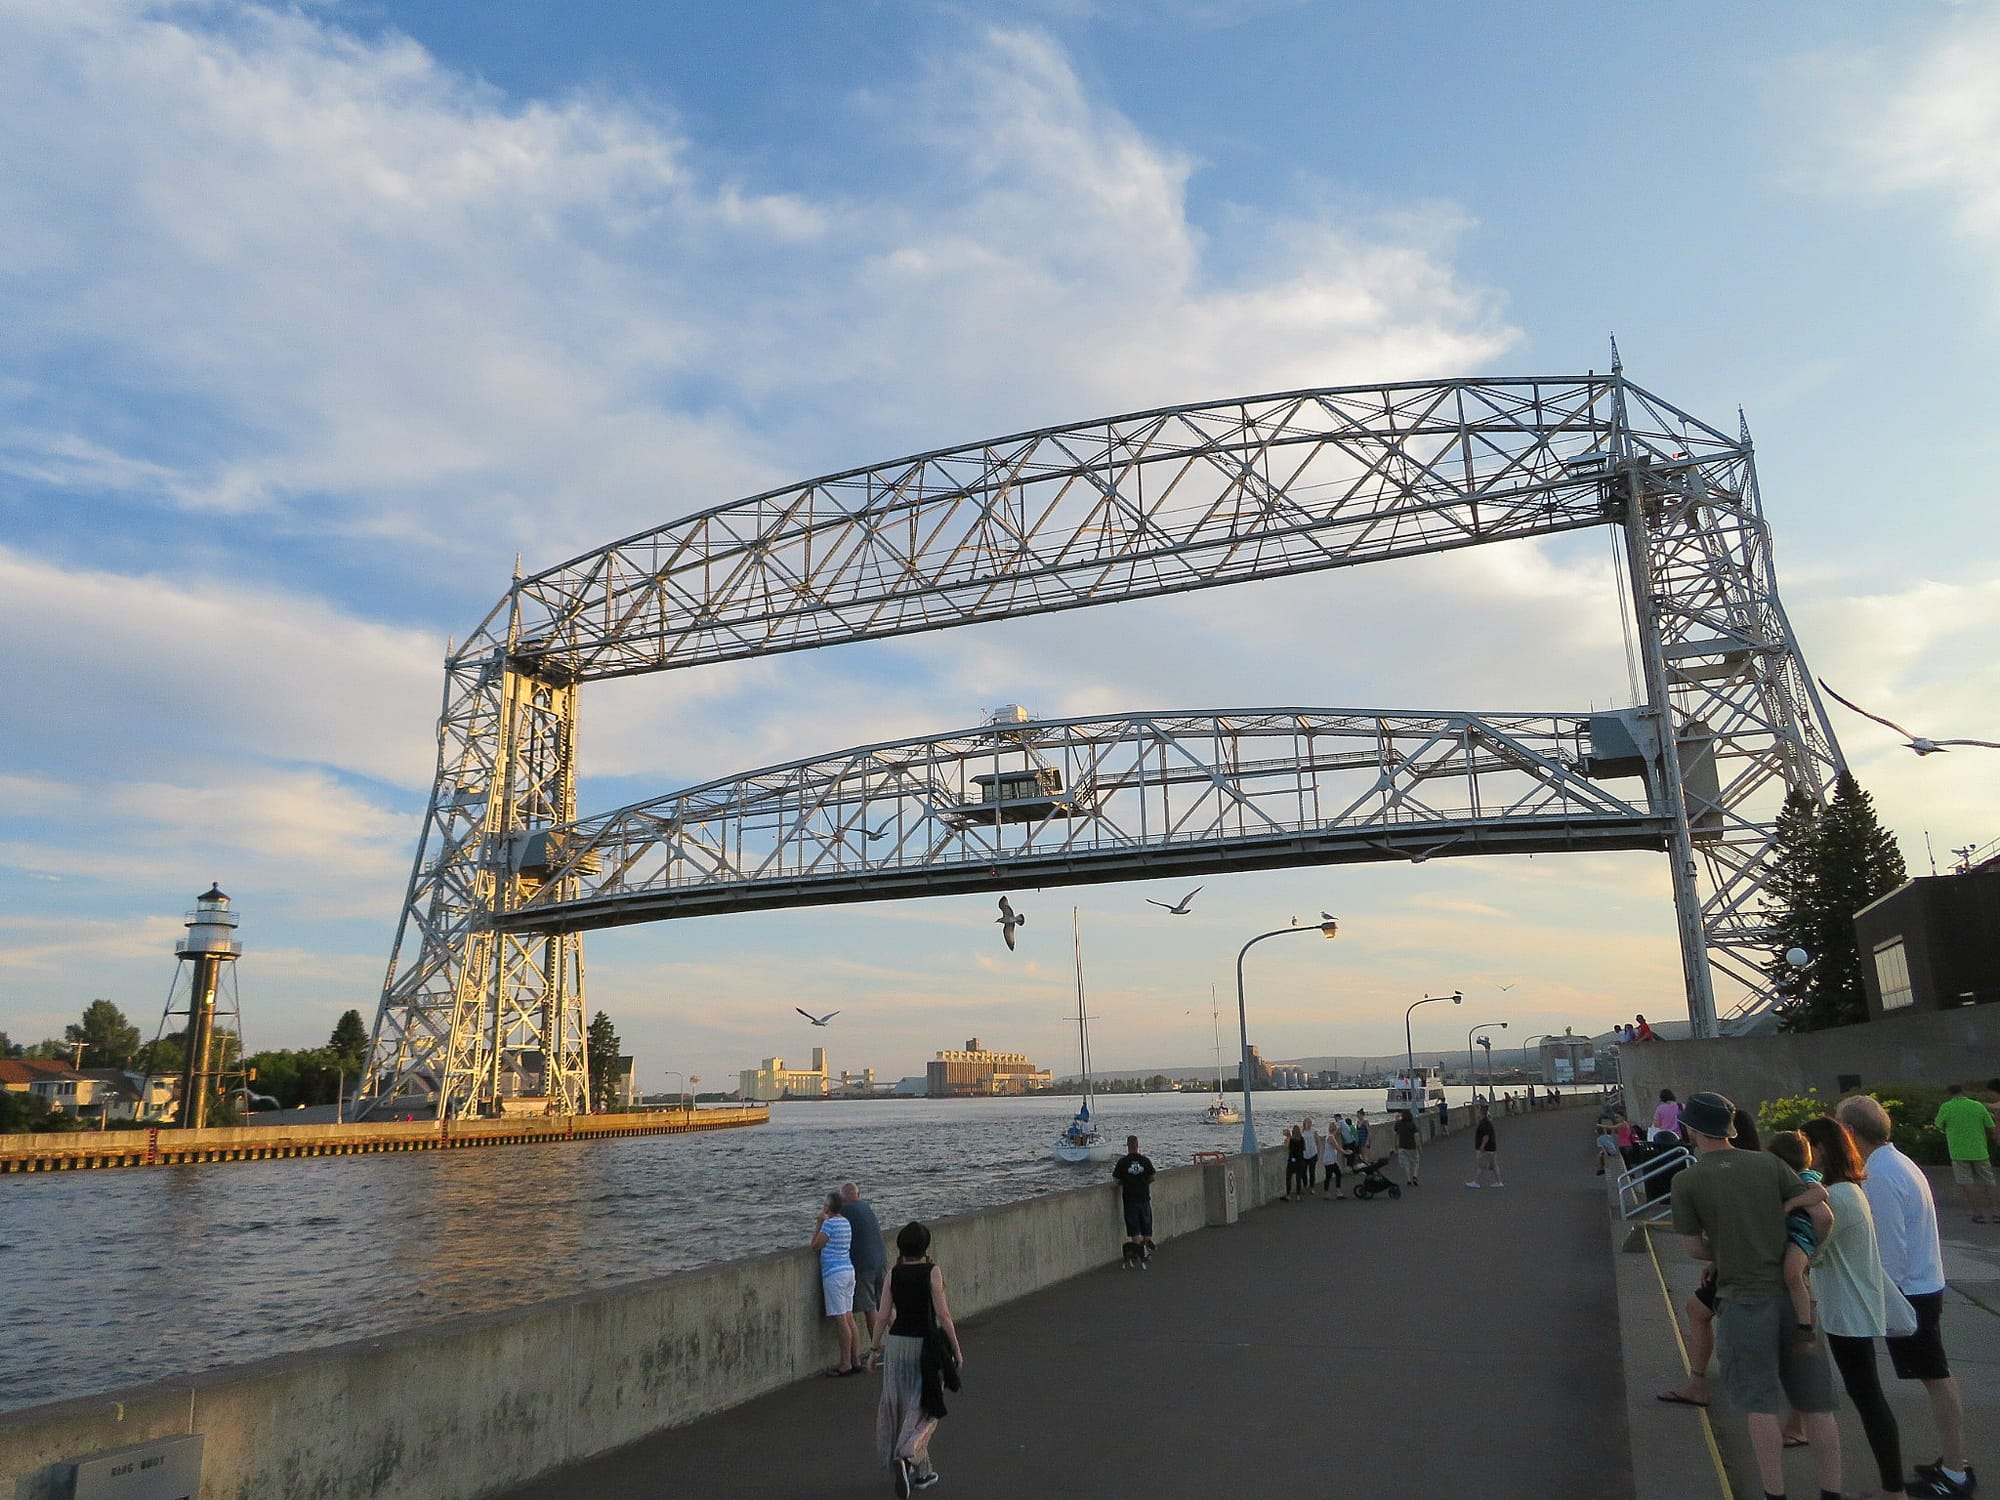 Kids love to watch the Aerial Bridge lift and lower to allow ships passage to Lake Superior